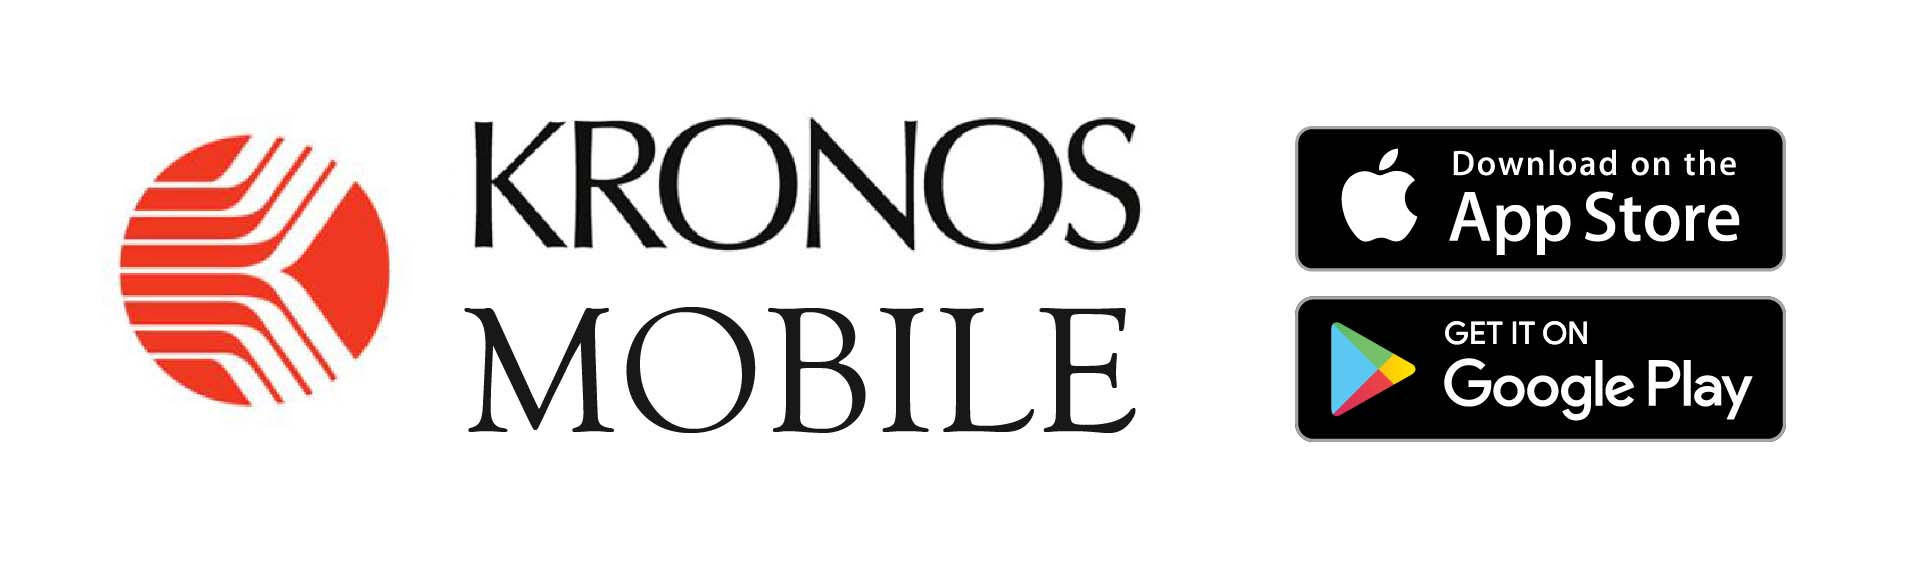 Kronos Mobile: The Hidden Gem at Village